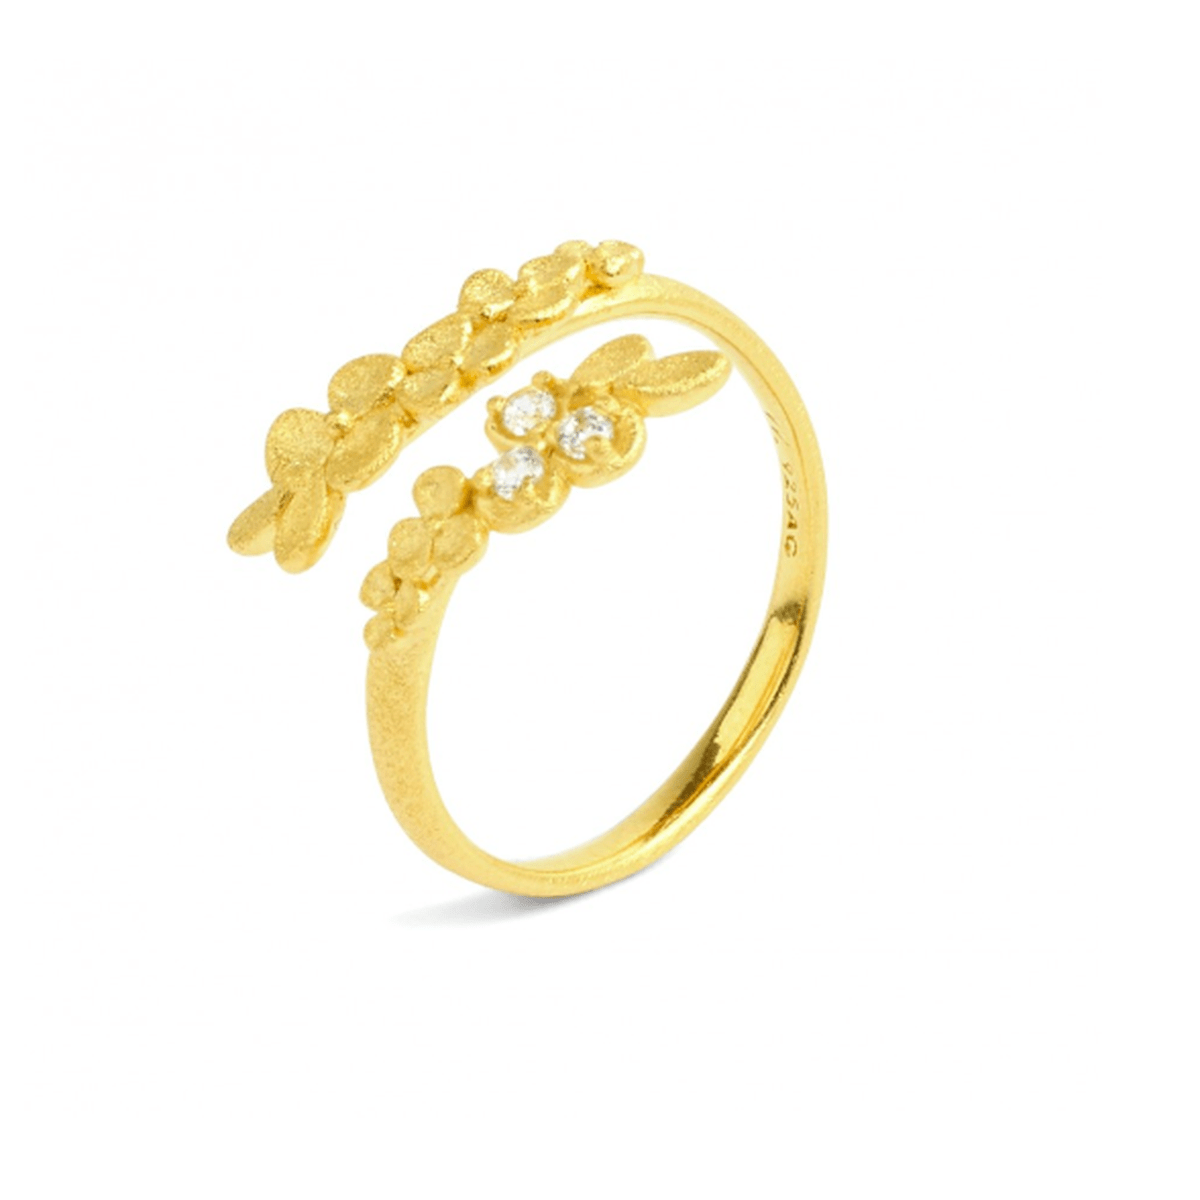 Melia Zirconia Ring - 53307156